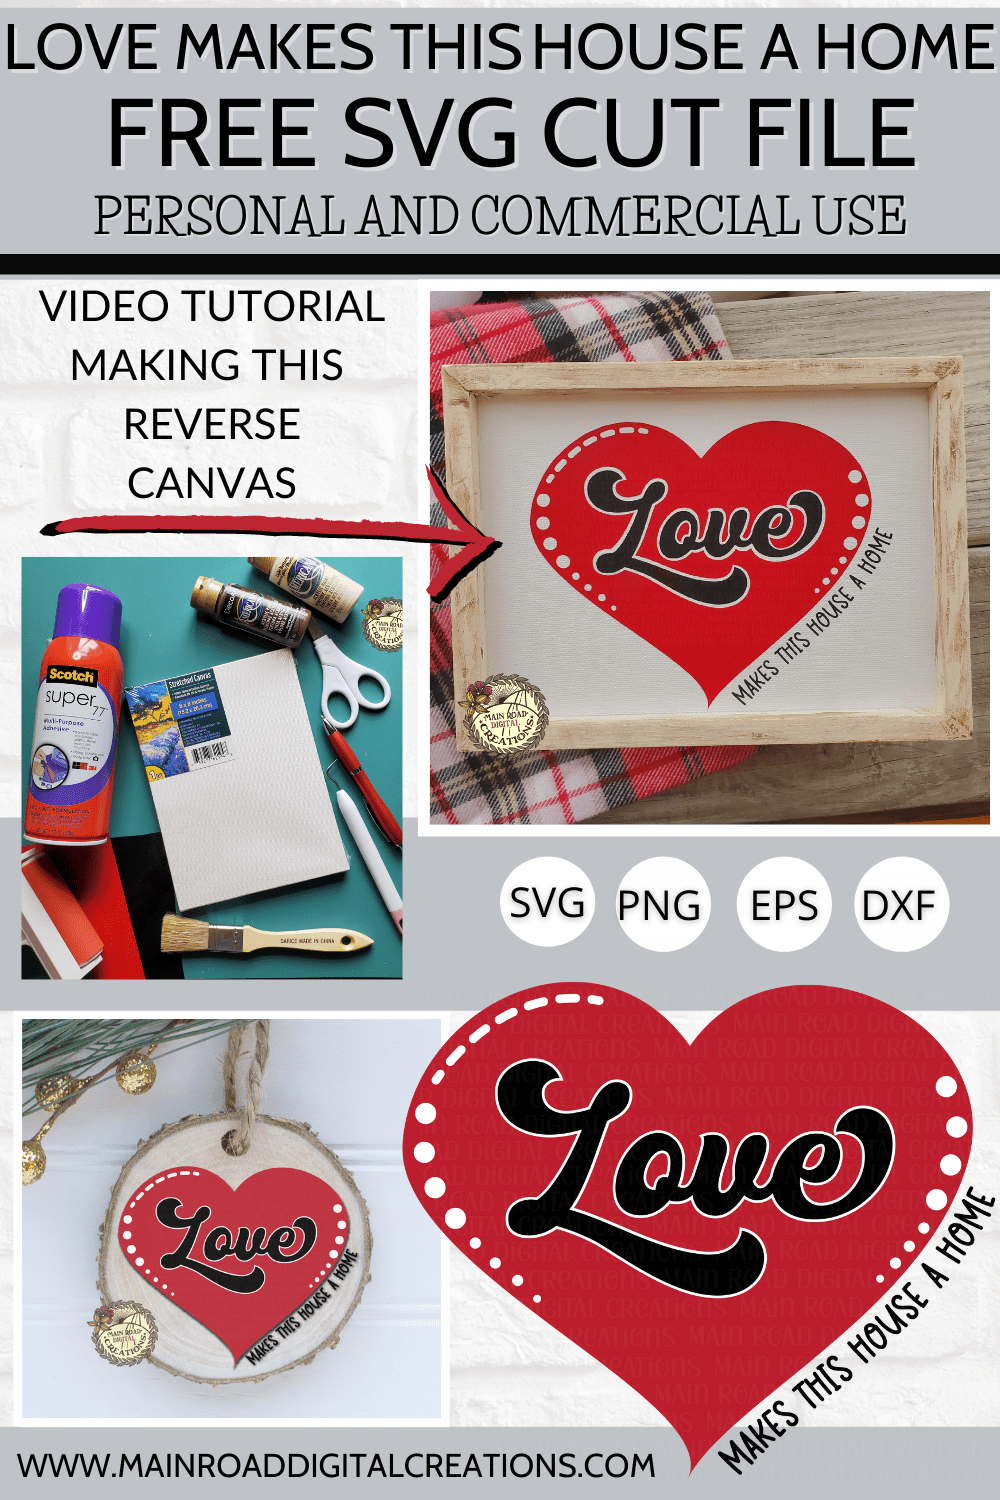 free svg, cricut craft tutorial, design space tutorial making a reverse canvas, free love makes this house a home cut file, dollar tree crafts, ornament svg ideas, free ornament svg, svg for new home free